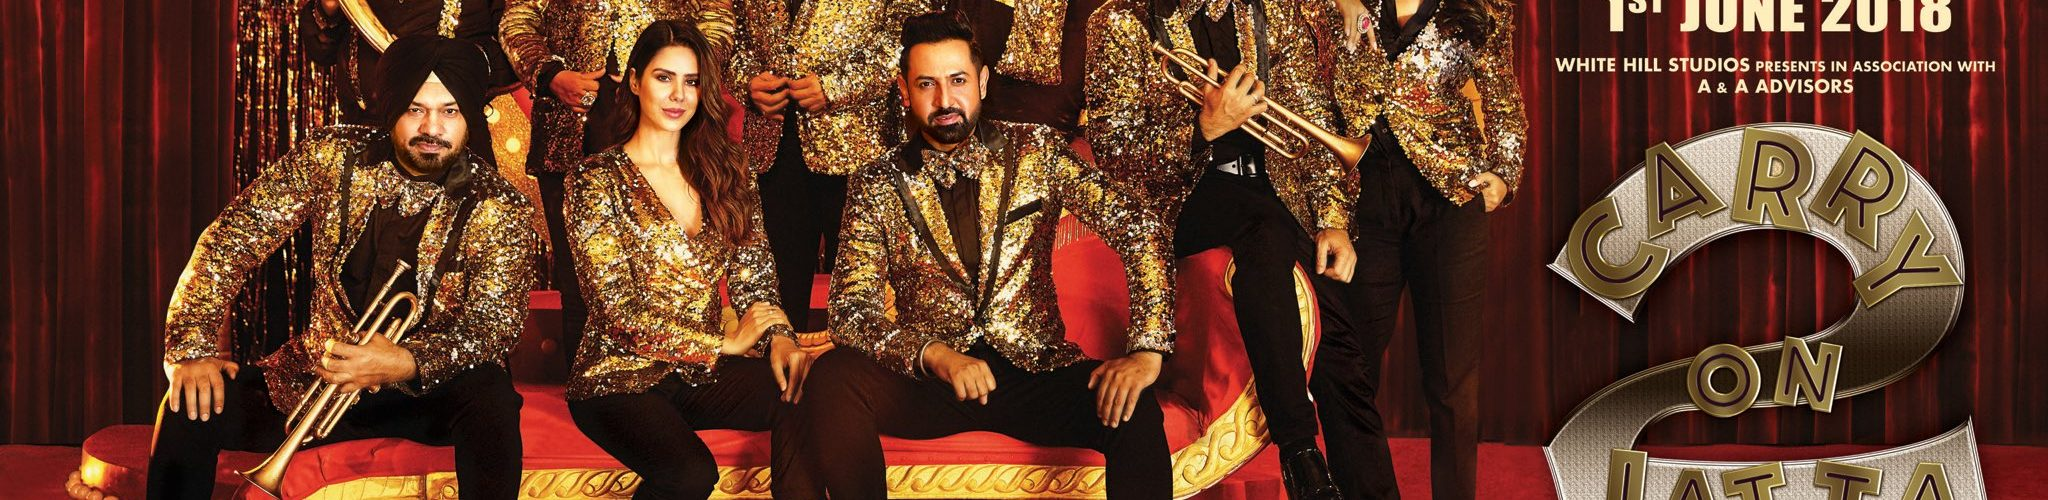 Gippy Grewal starrer 'Carry On Jatta 2' gets a release date